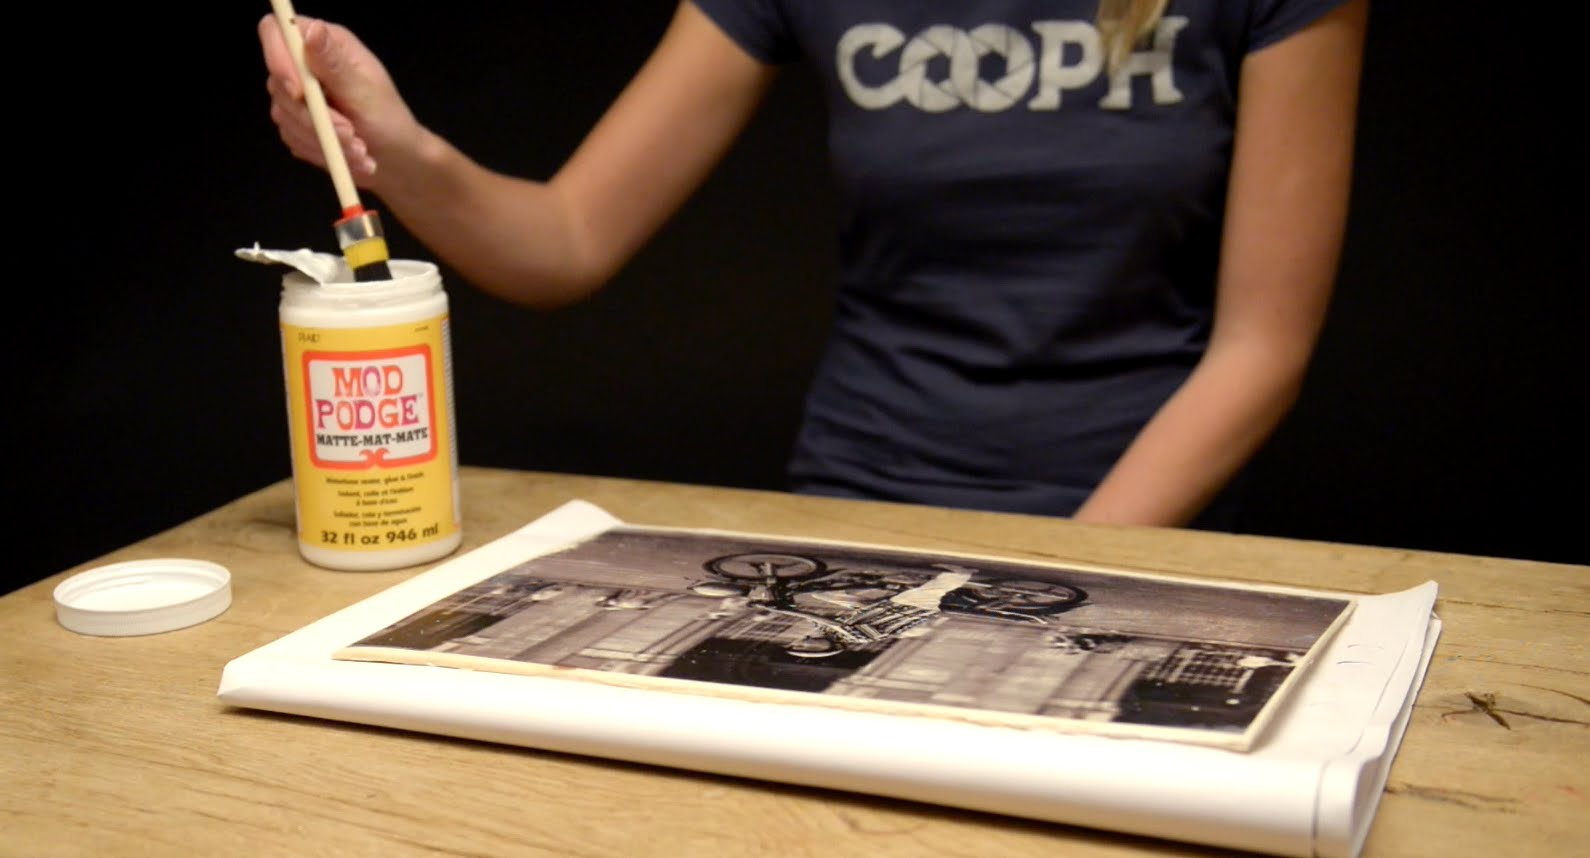 Gifts Photographers 6 Cool Diy Photography Gifts That You Can Make Yourself